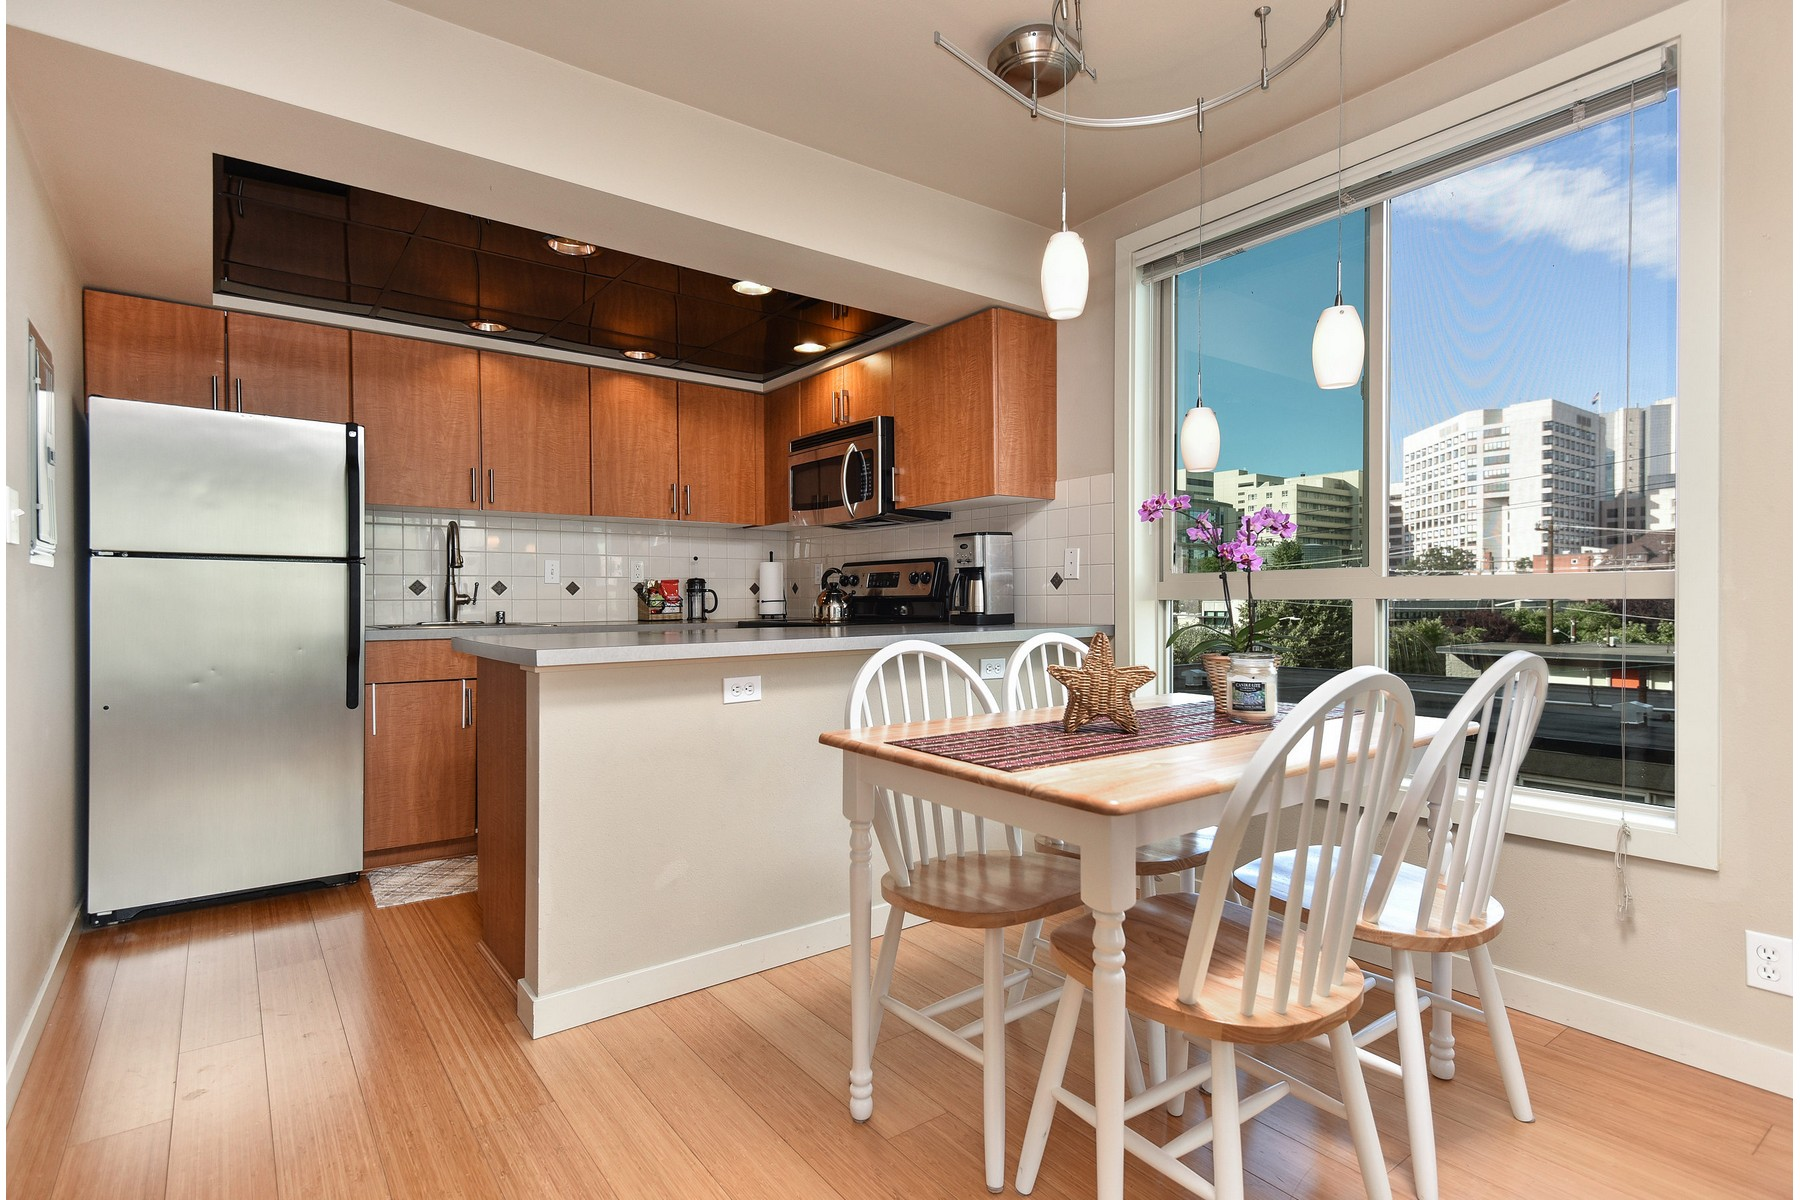 Condominium for Sale at First Hill Condo 905 Cherry St #402 Seattle, Washington 98104 United States